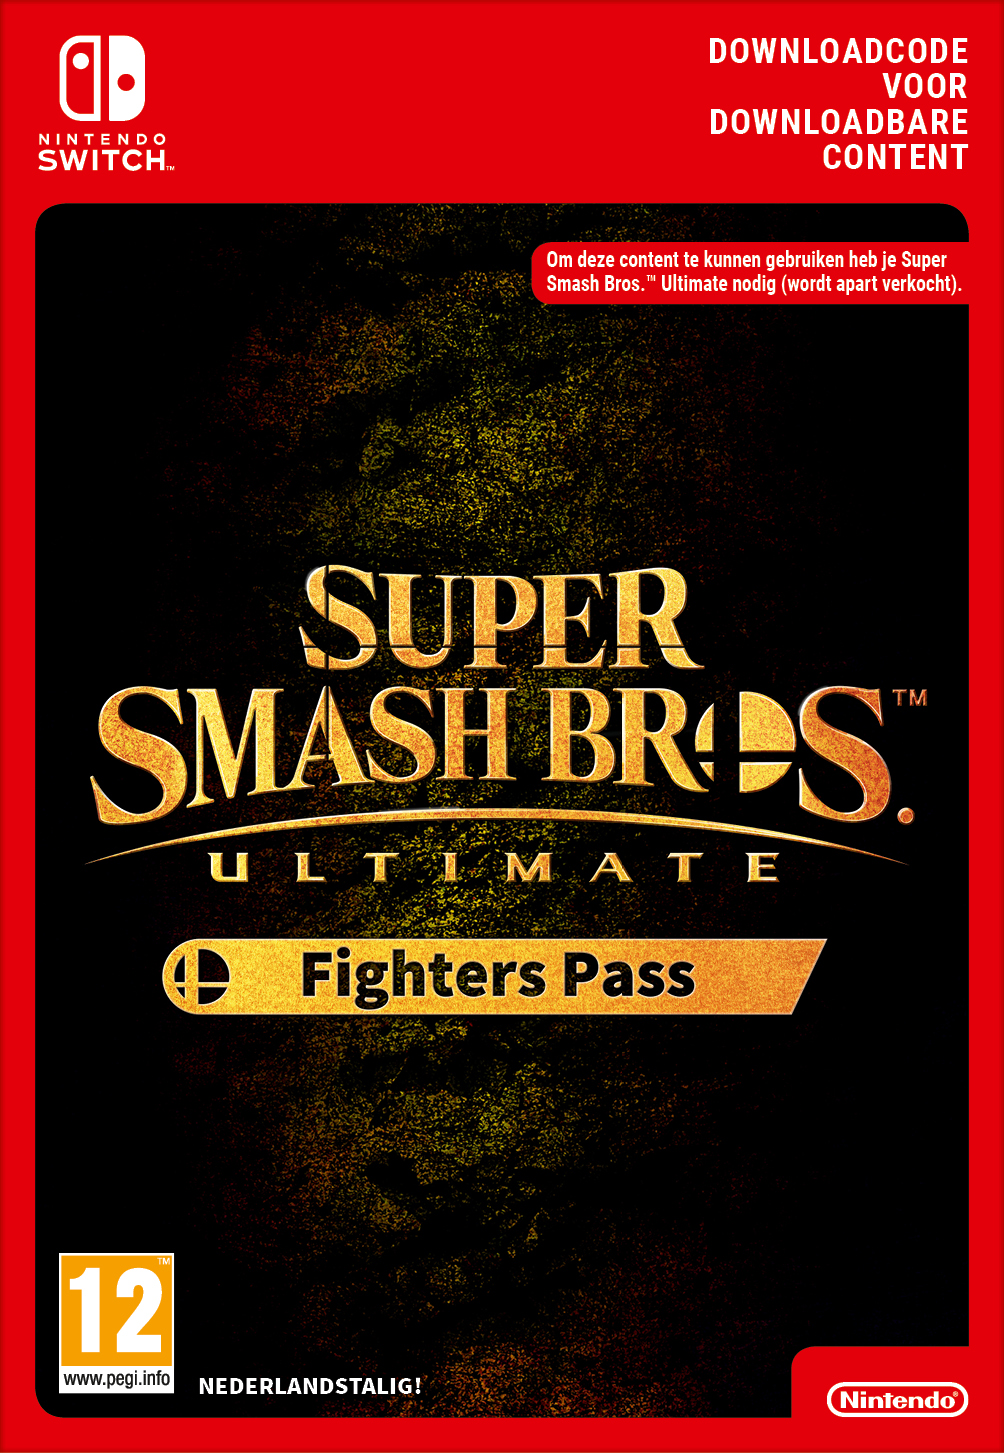 ddc-aoc-ssb-ultimate-fighters-pass